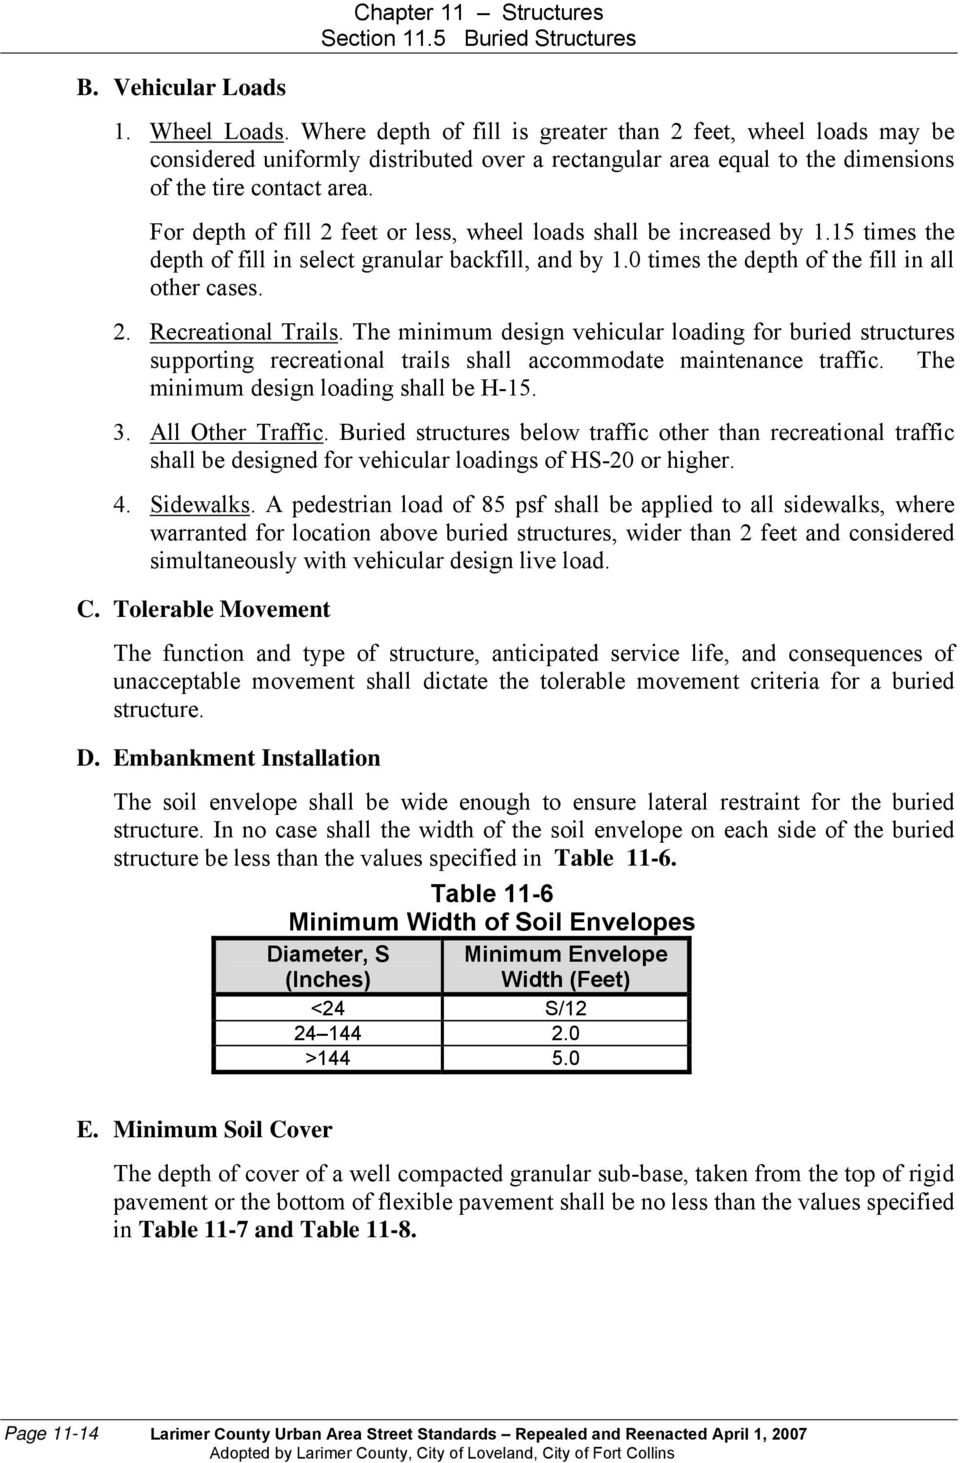 CHAPTER 11 STRUCTURES TABLE OF CONTENTS - PDF